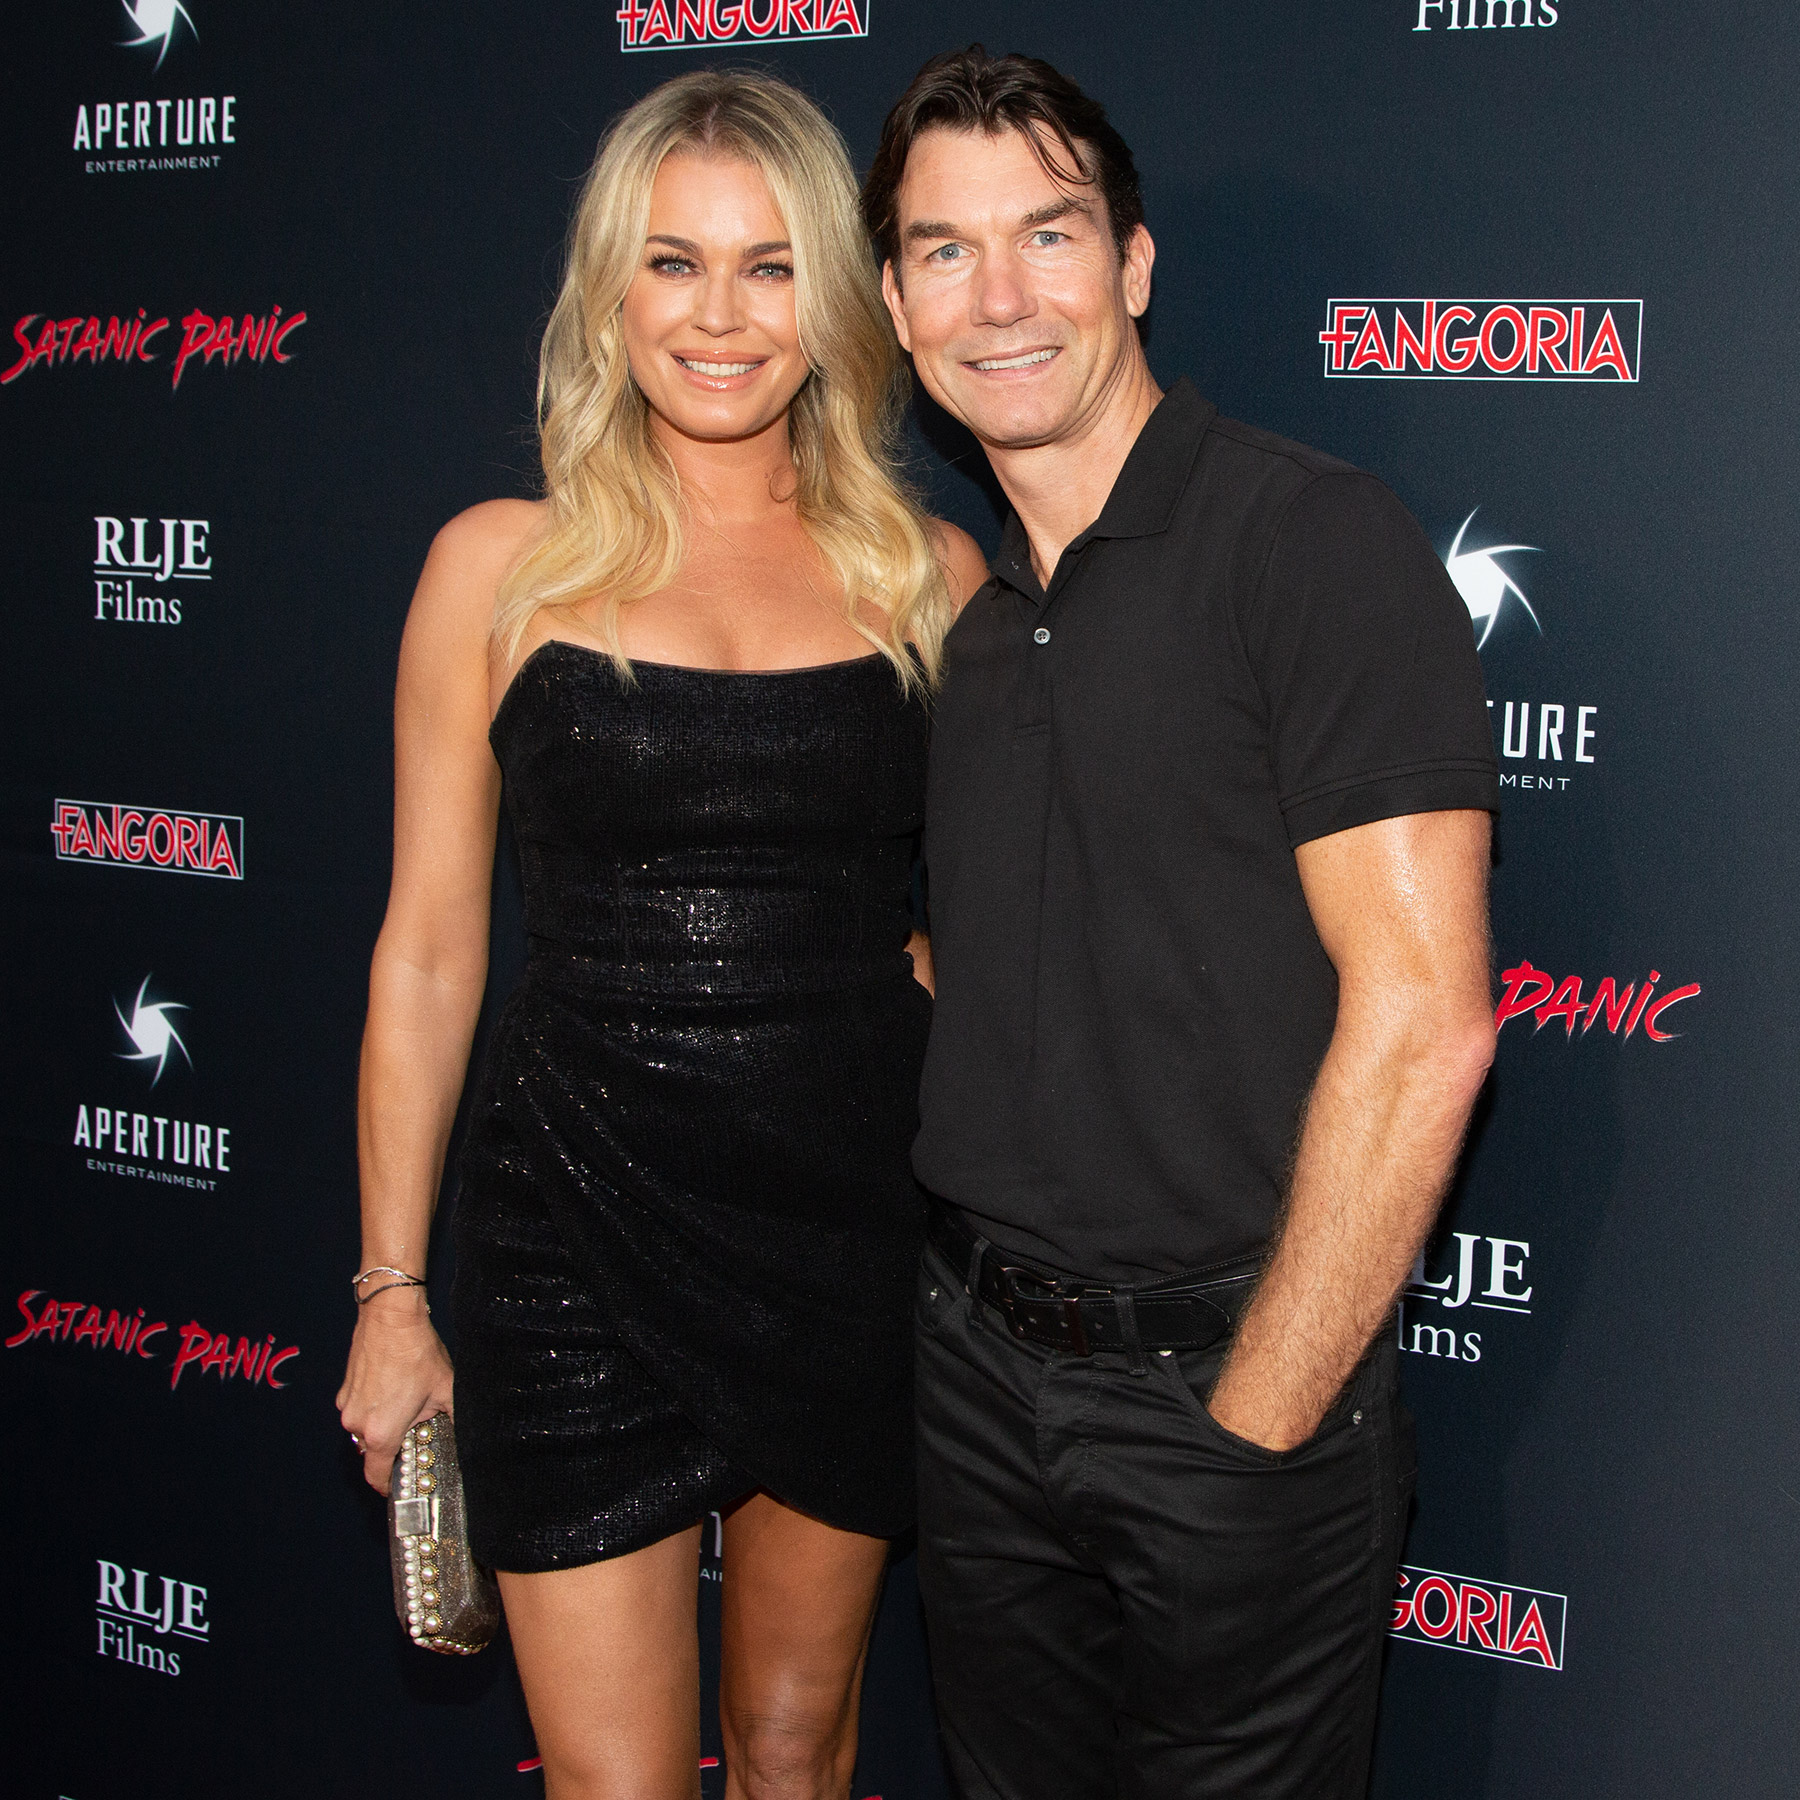 Rebecca Romijn (L) and Jerry O'Connell